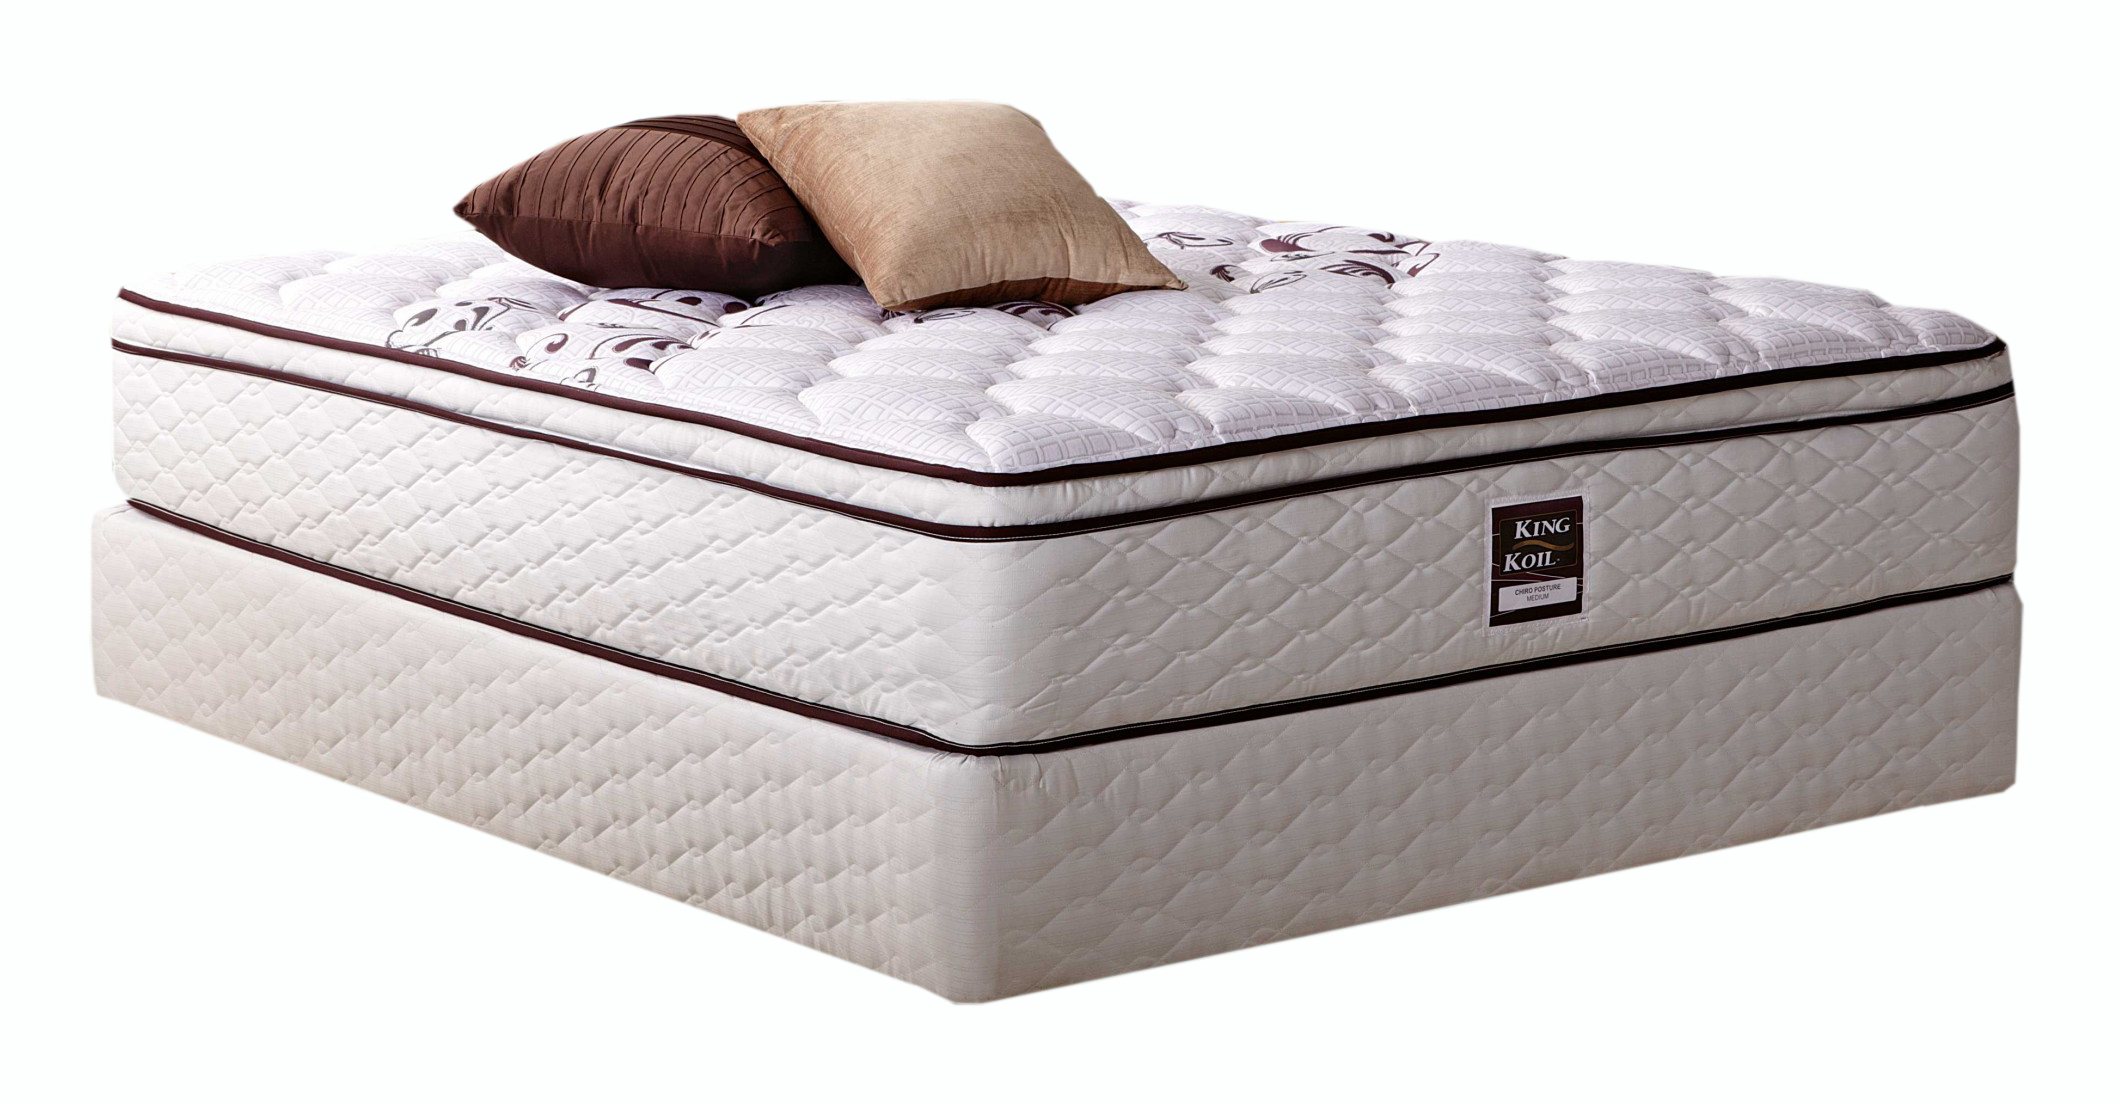 King koil queen size mattress criesoftheheart King mattress